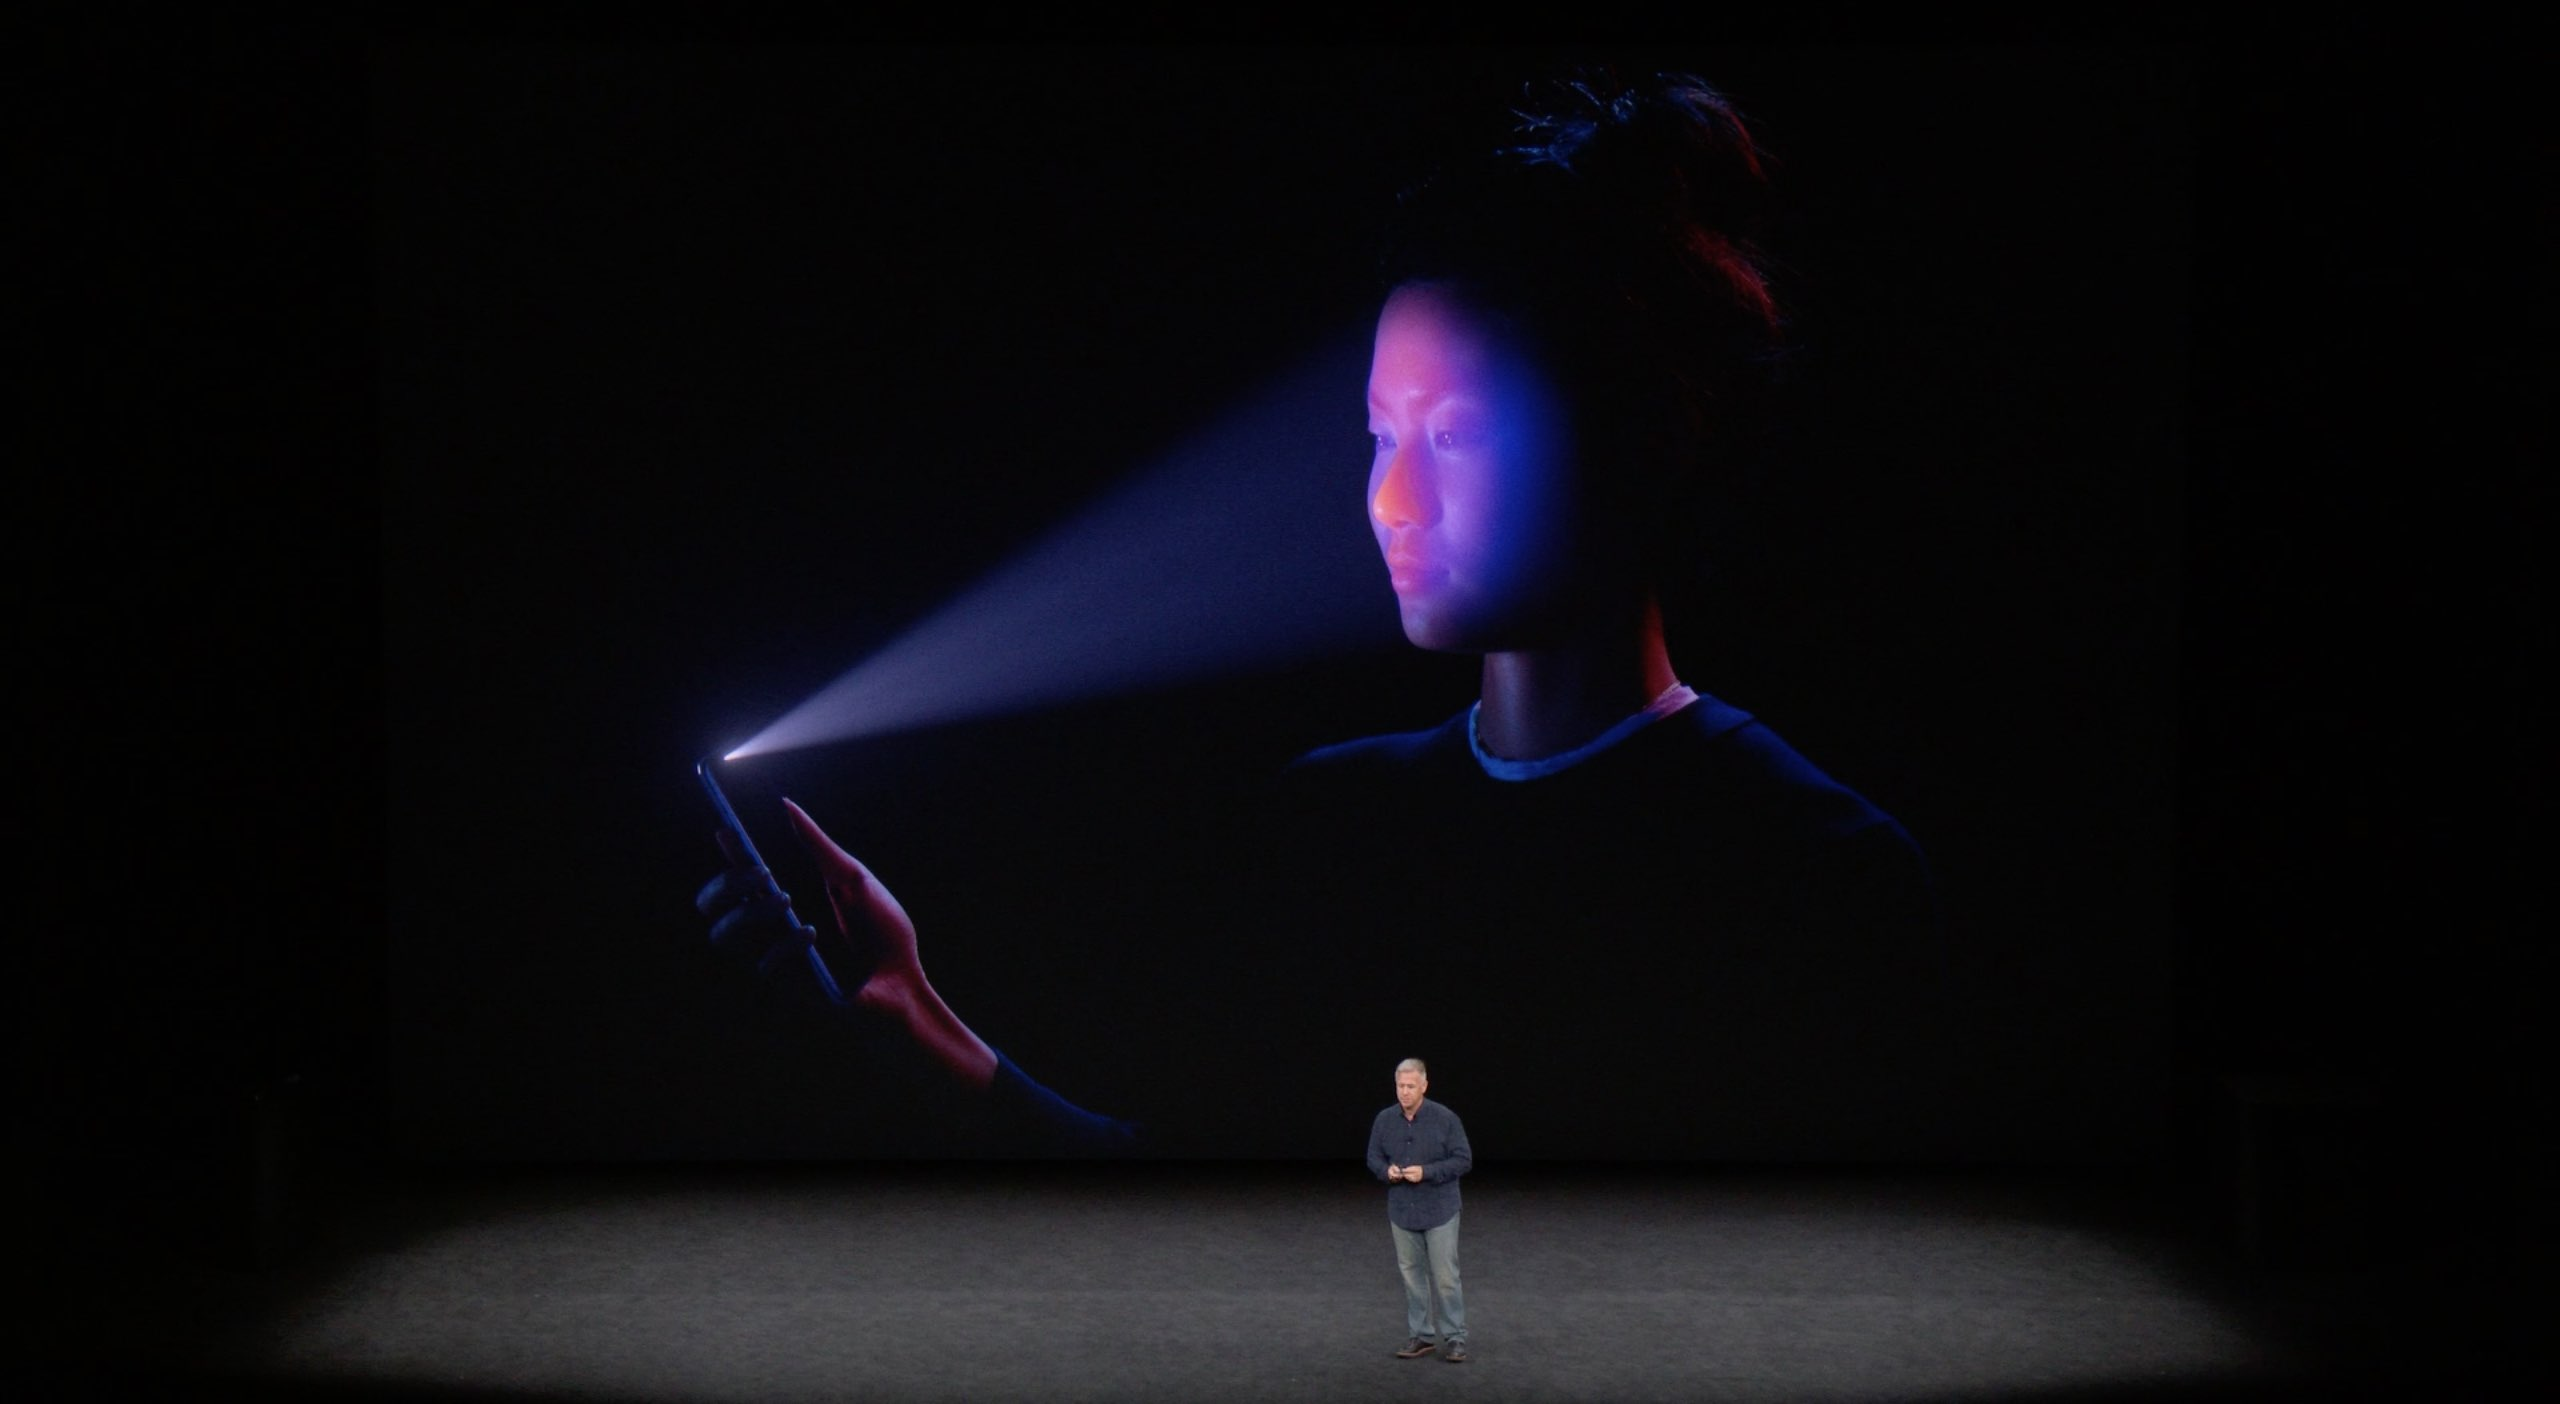 Kuo—2019 iPhone: upgraded Face ID